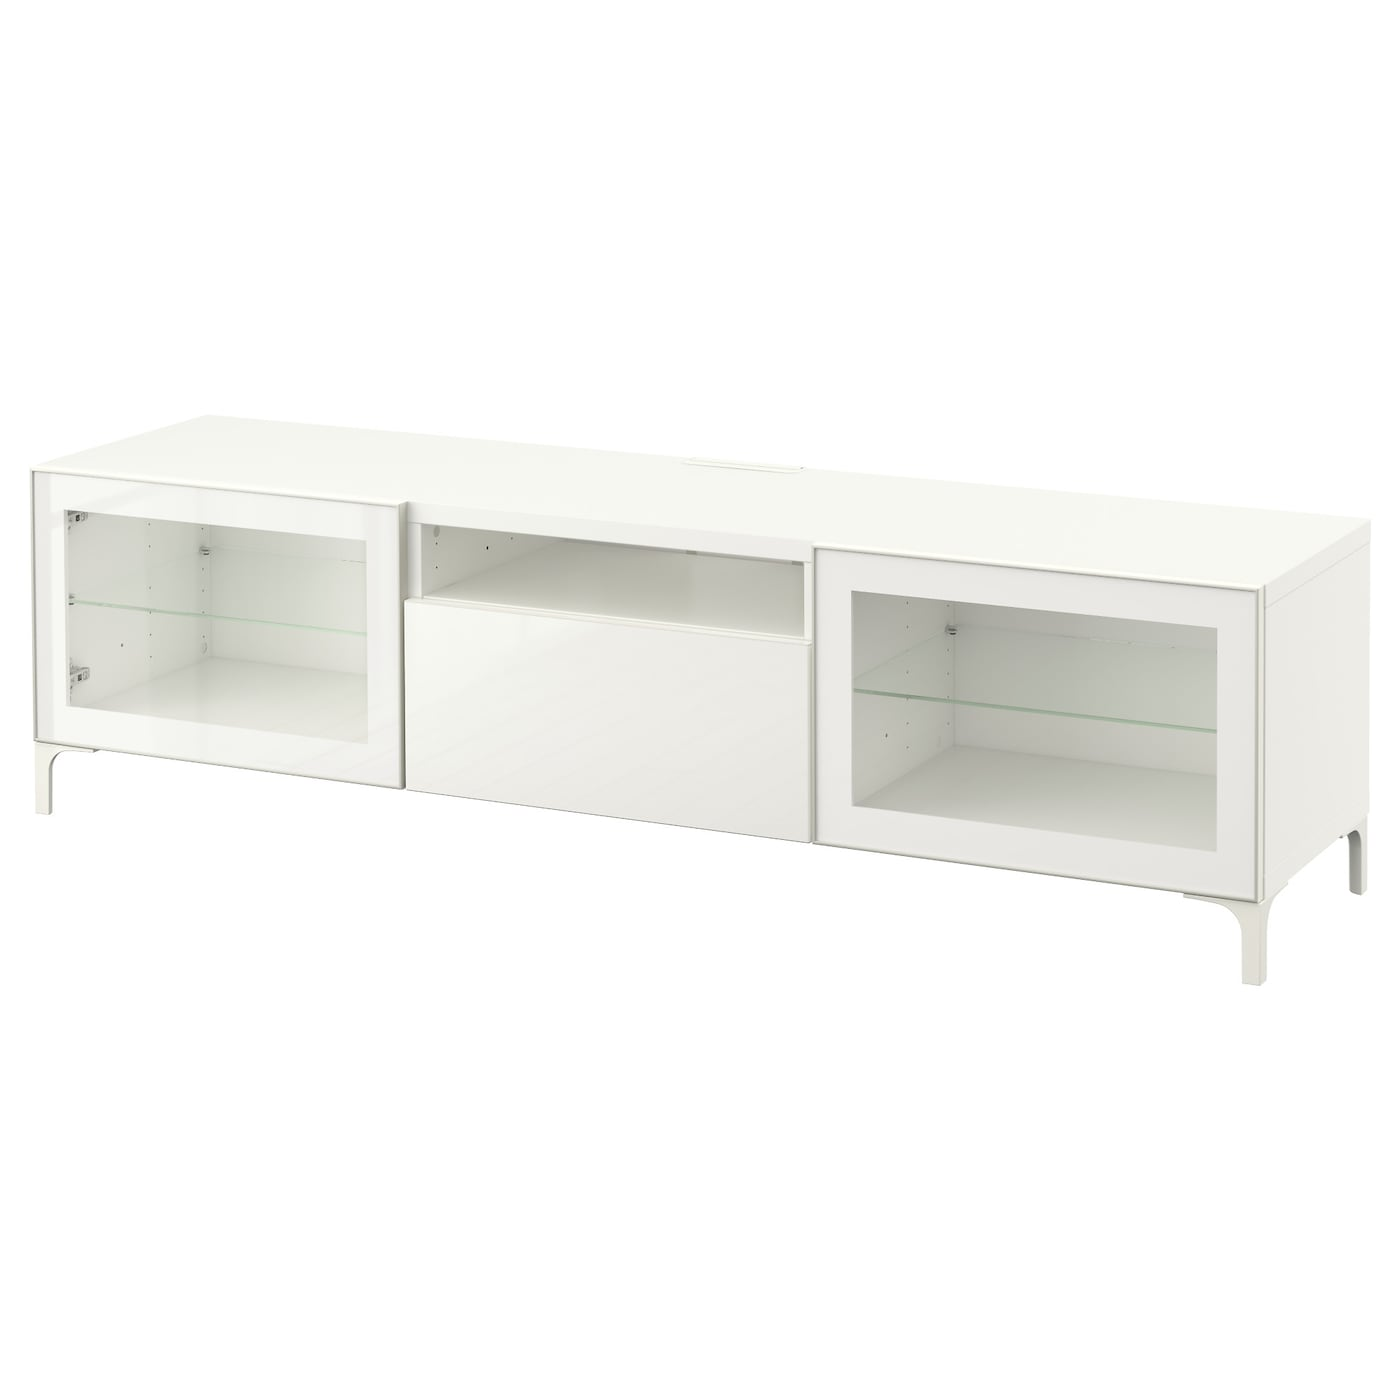 Best Banc Tv Blanc Selsviken Brillant Blanc Verre Transparent  # Meuble Tv En Verre Transparent